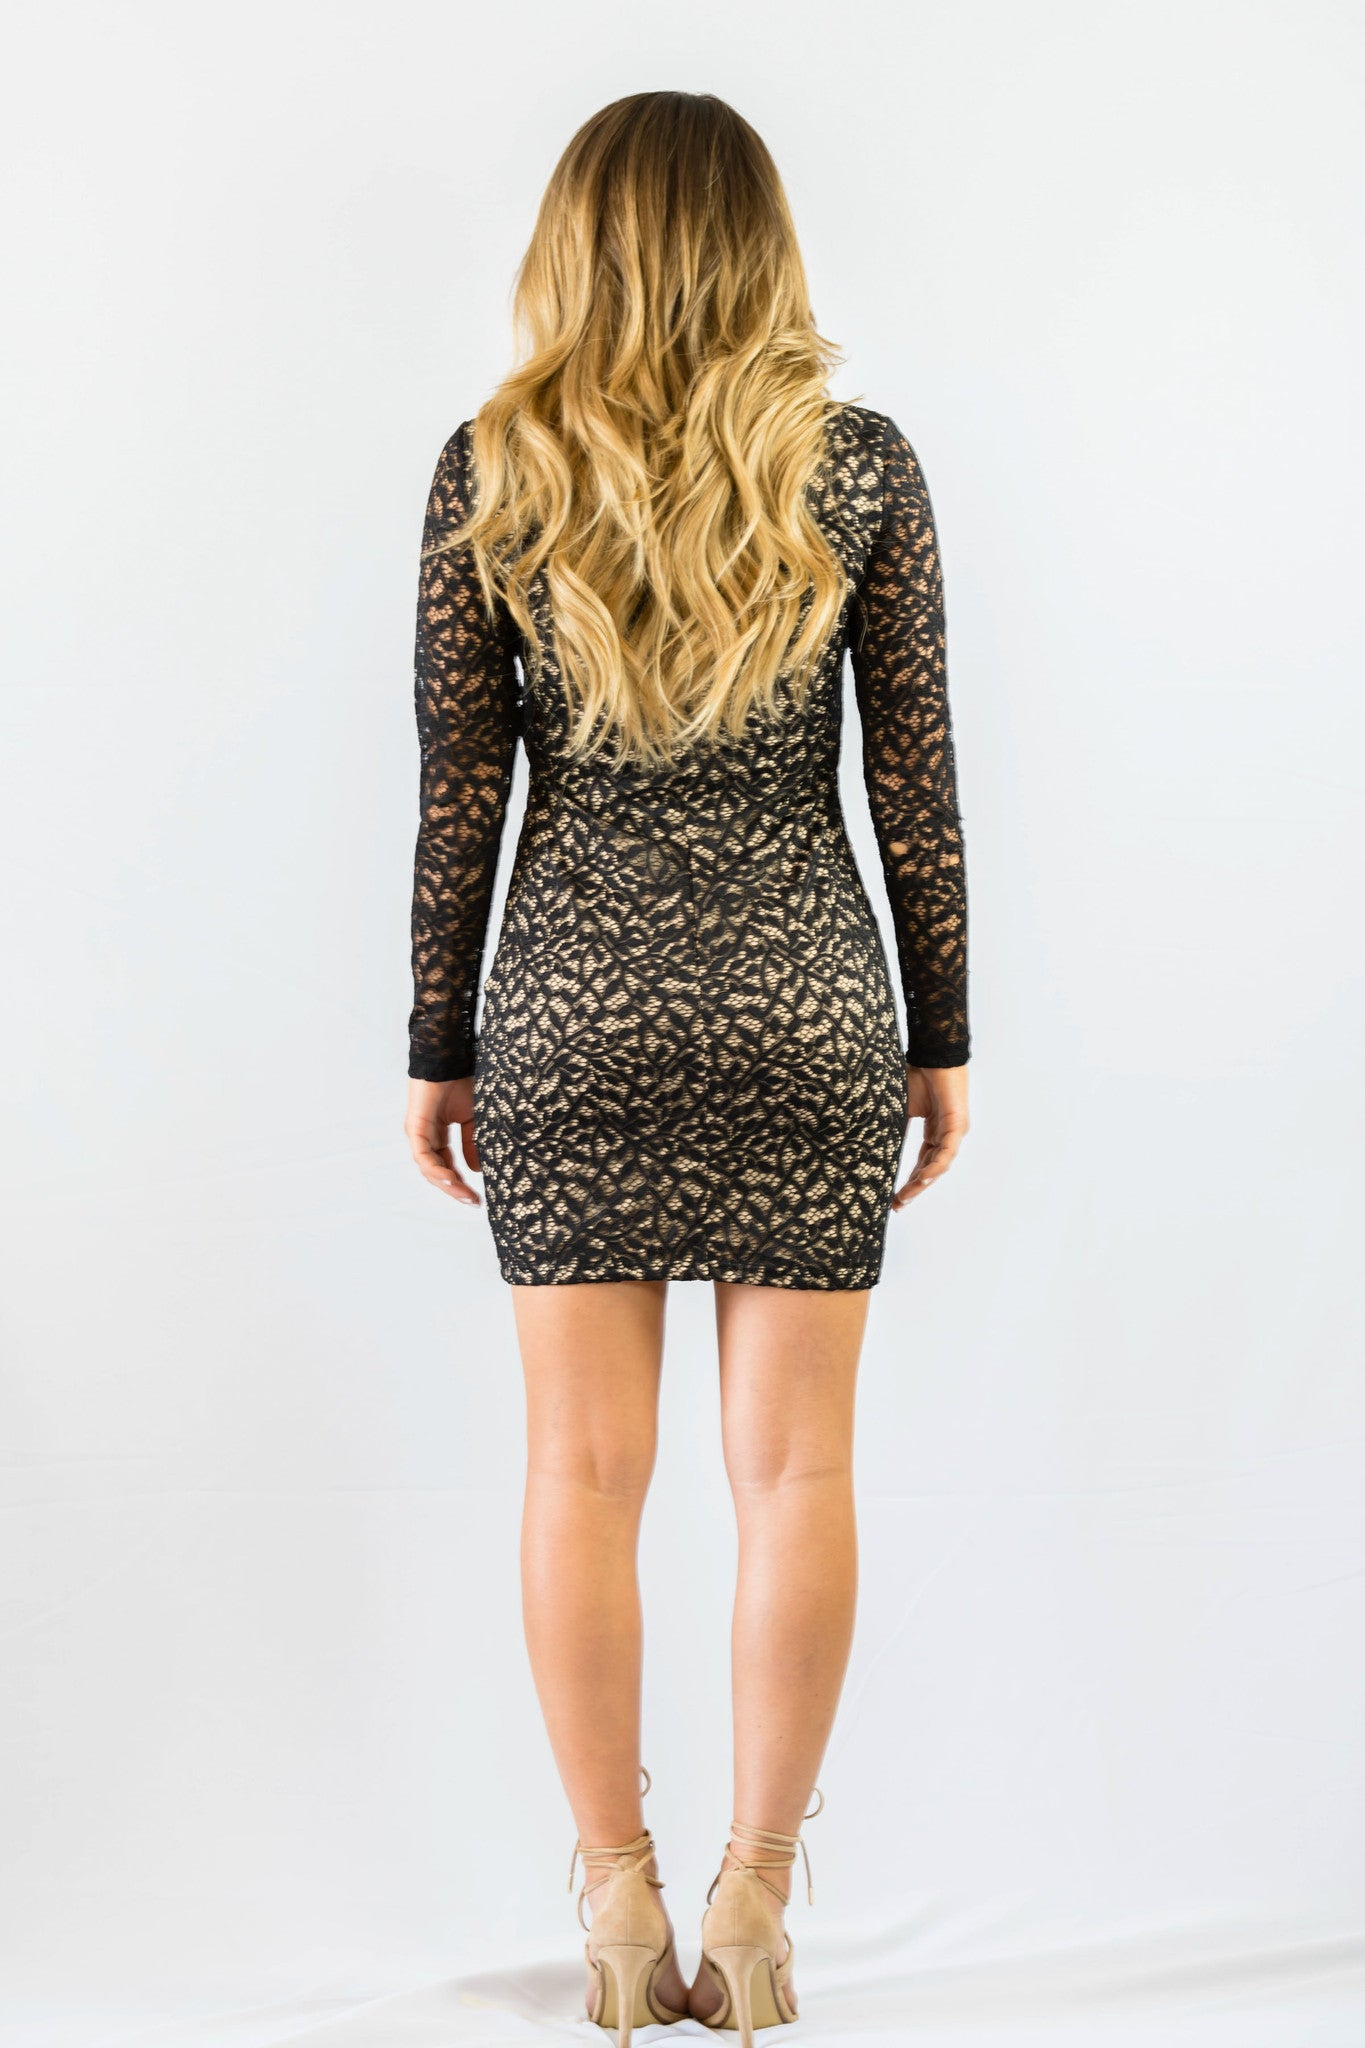 WYLDR In Too Deep Lace Black Body Con Dress - DRESSES - WYLDR - Free Vibrationz - 5